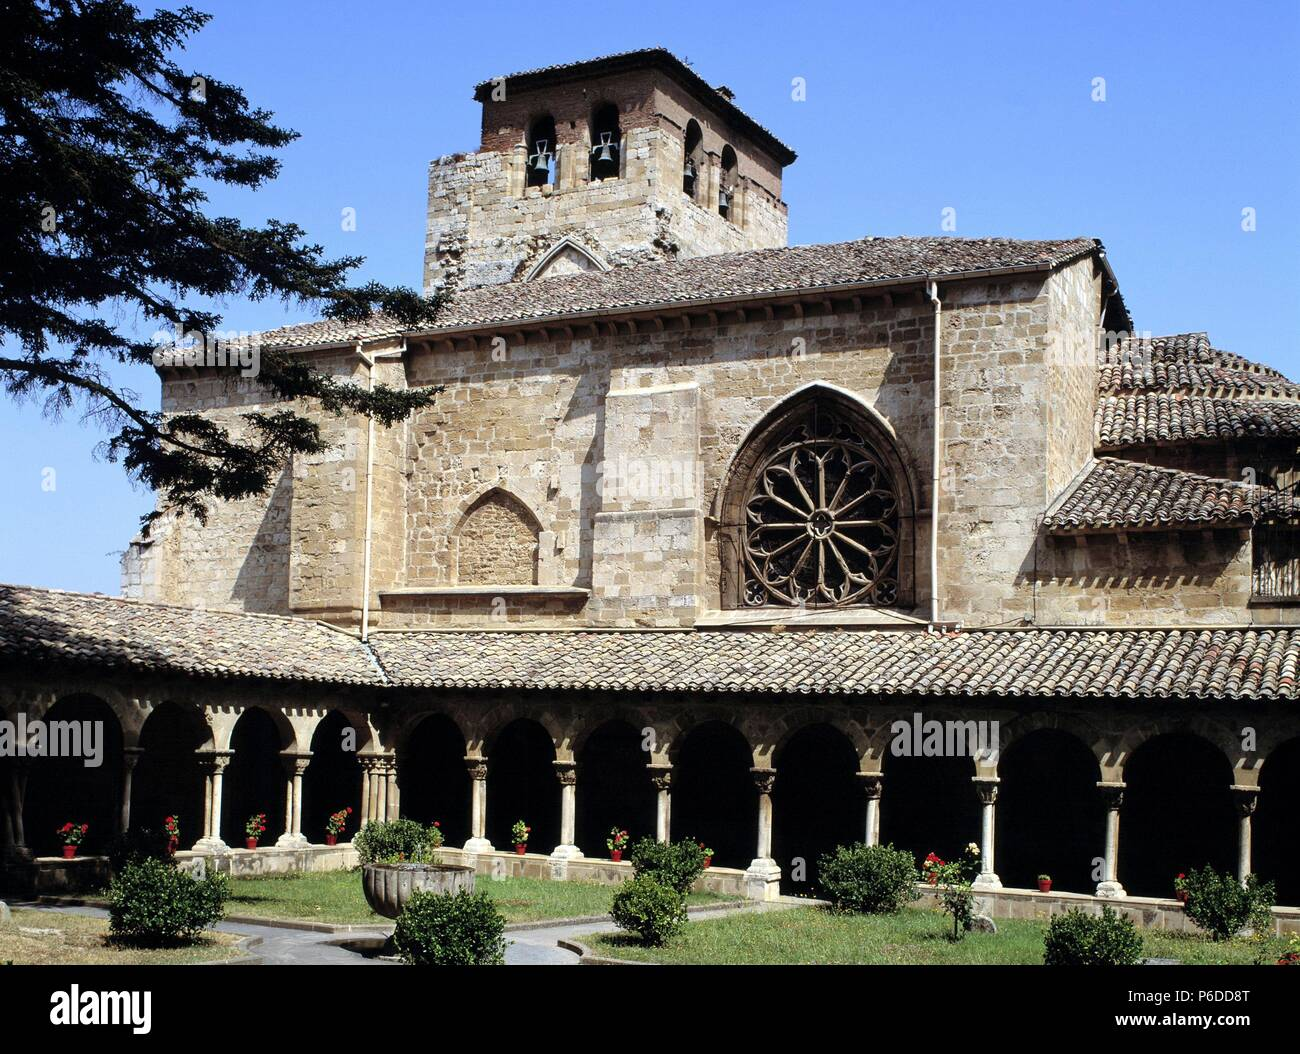 Navarra Estella San Pedro De La Rua Claustro Arte Romanico Stock Photo Alamy